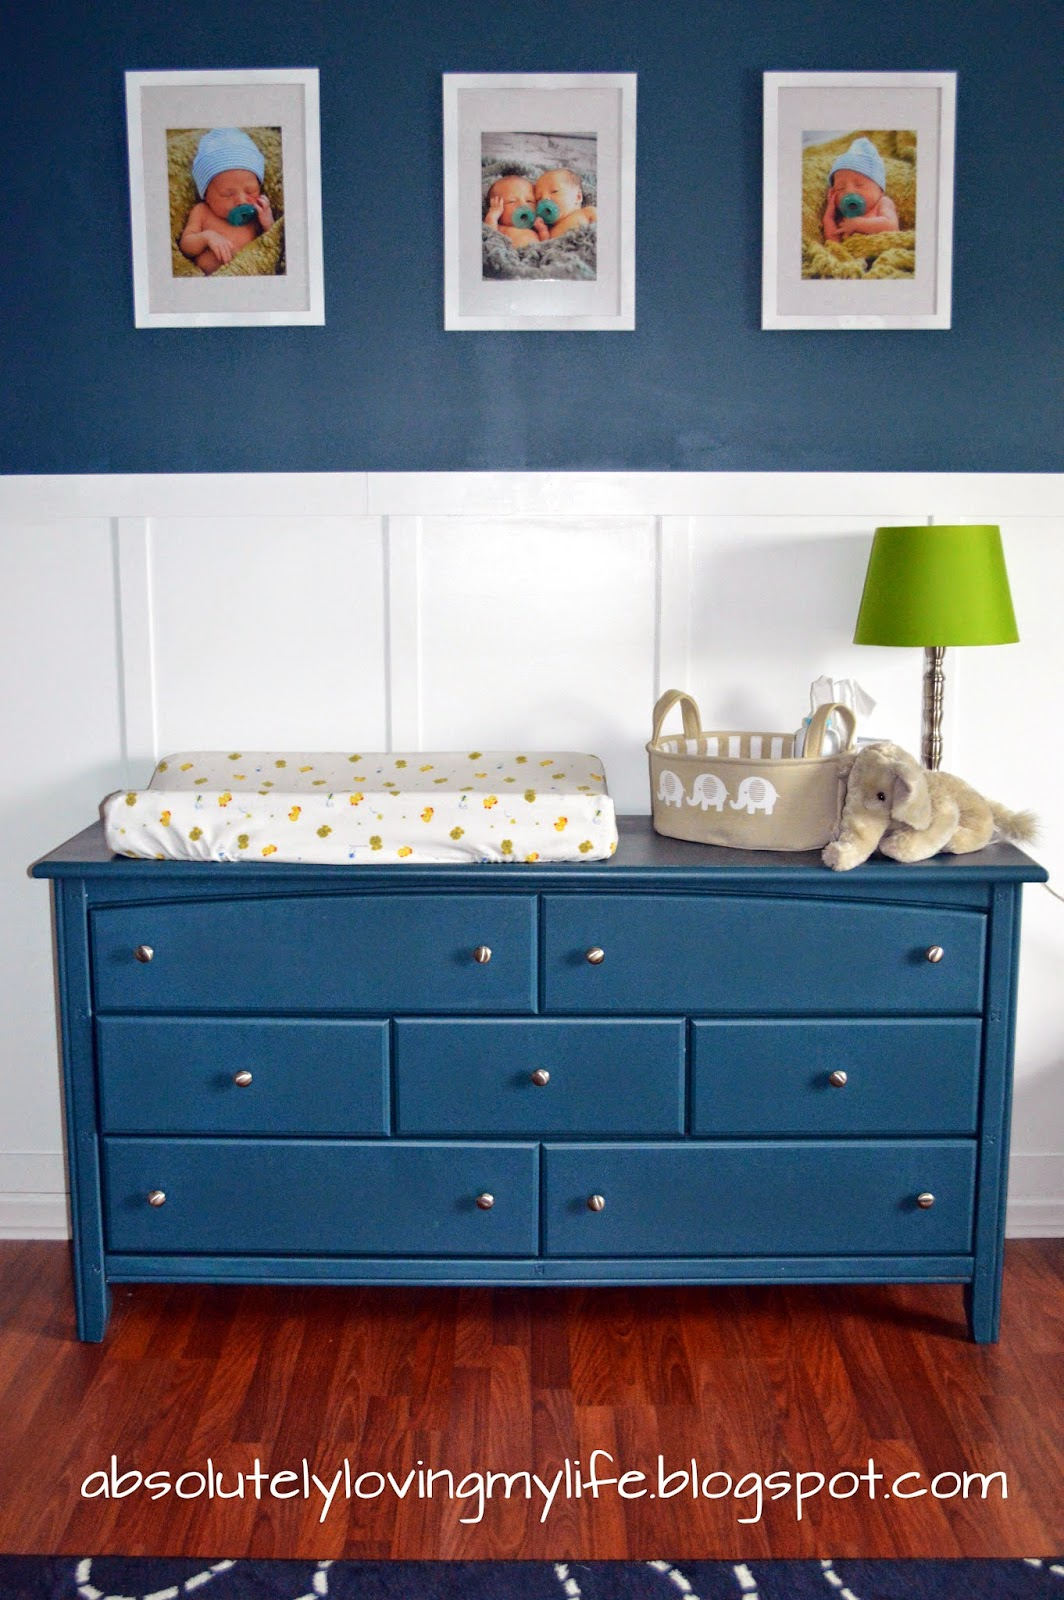 Changing Table Dresser | Cribs with Attached Changing Table Dresser | Espresso Changing Table Dresser